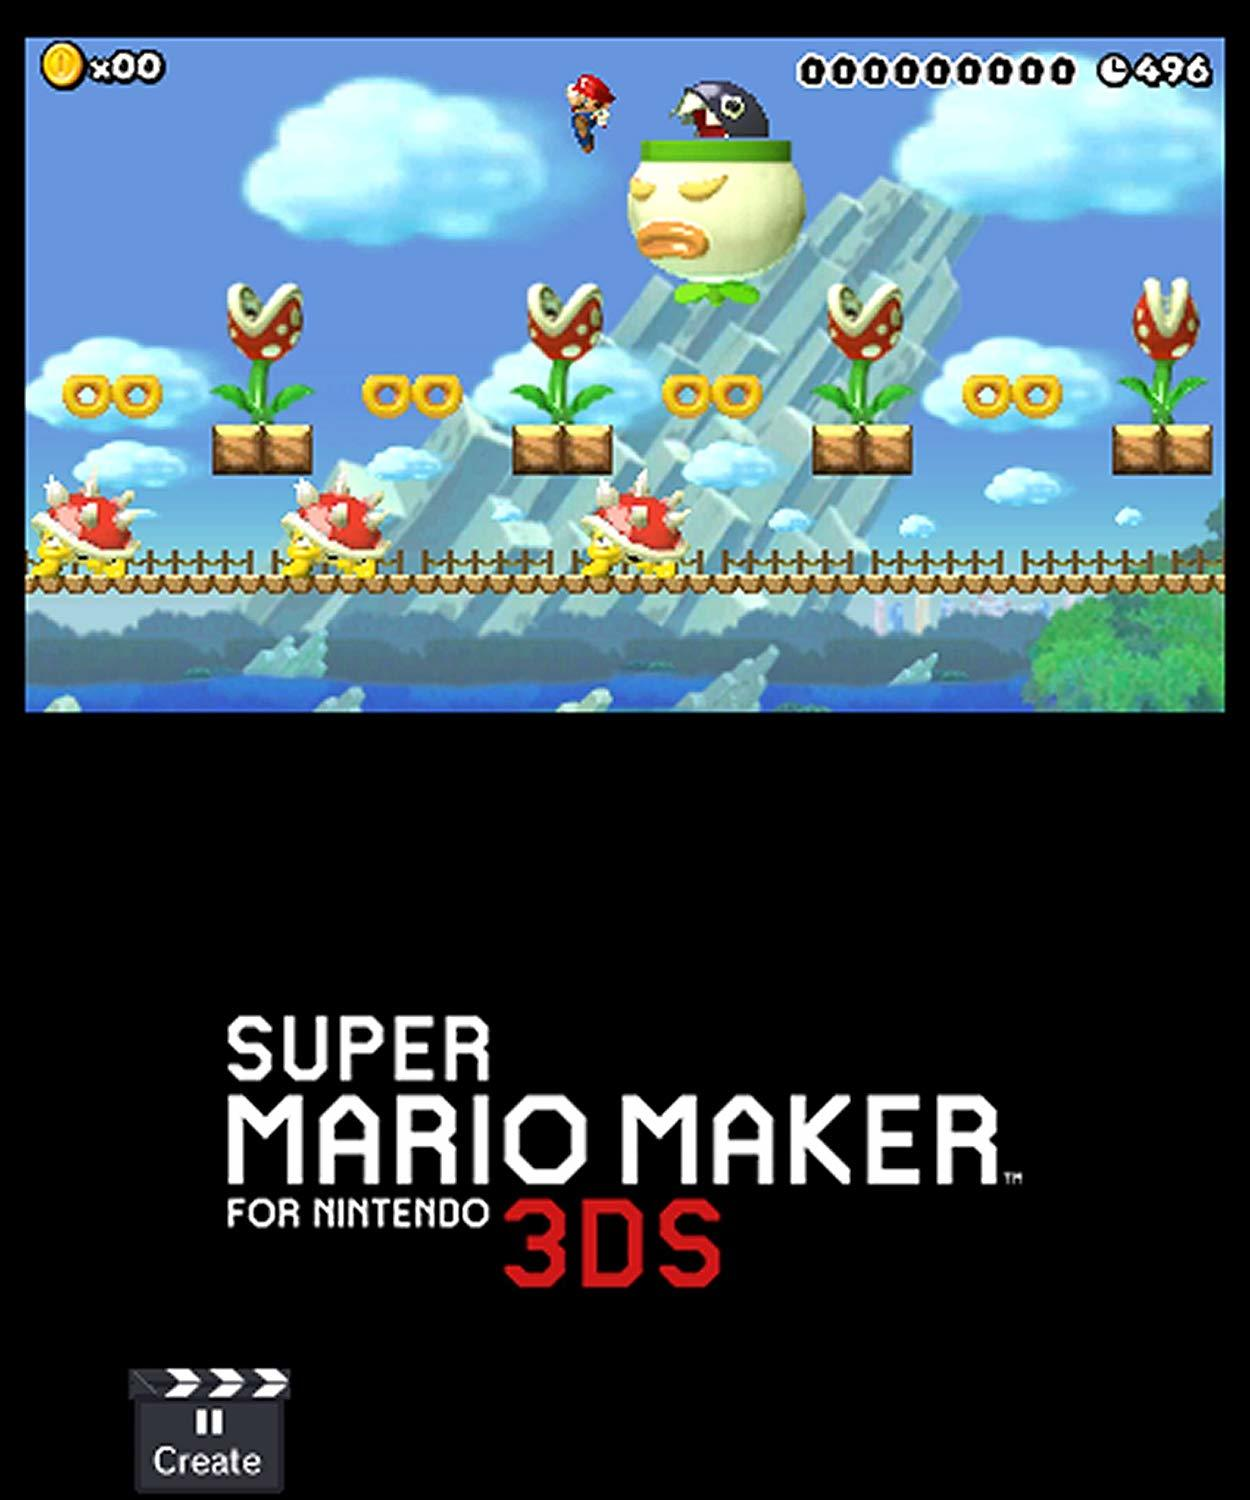 Super Mario Maker for Nintendo 3DS (Selects) for Nintendo 3DS image